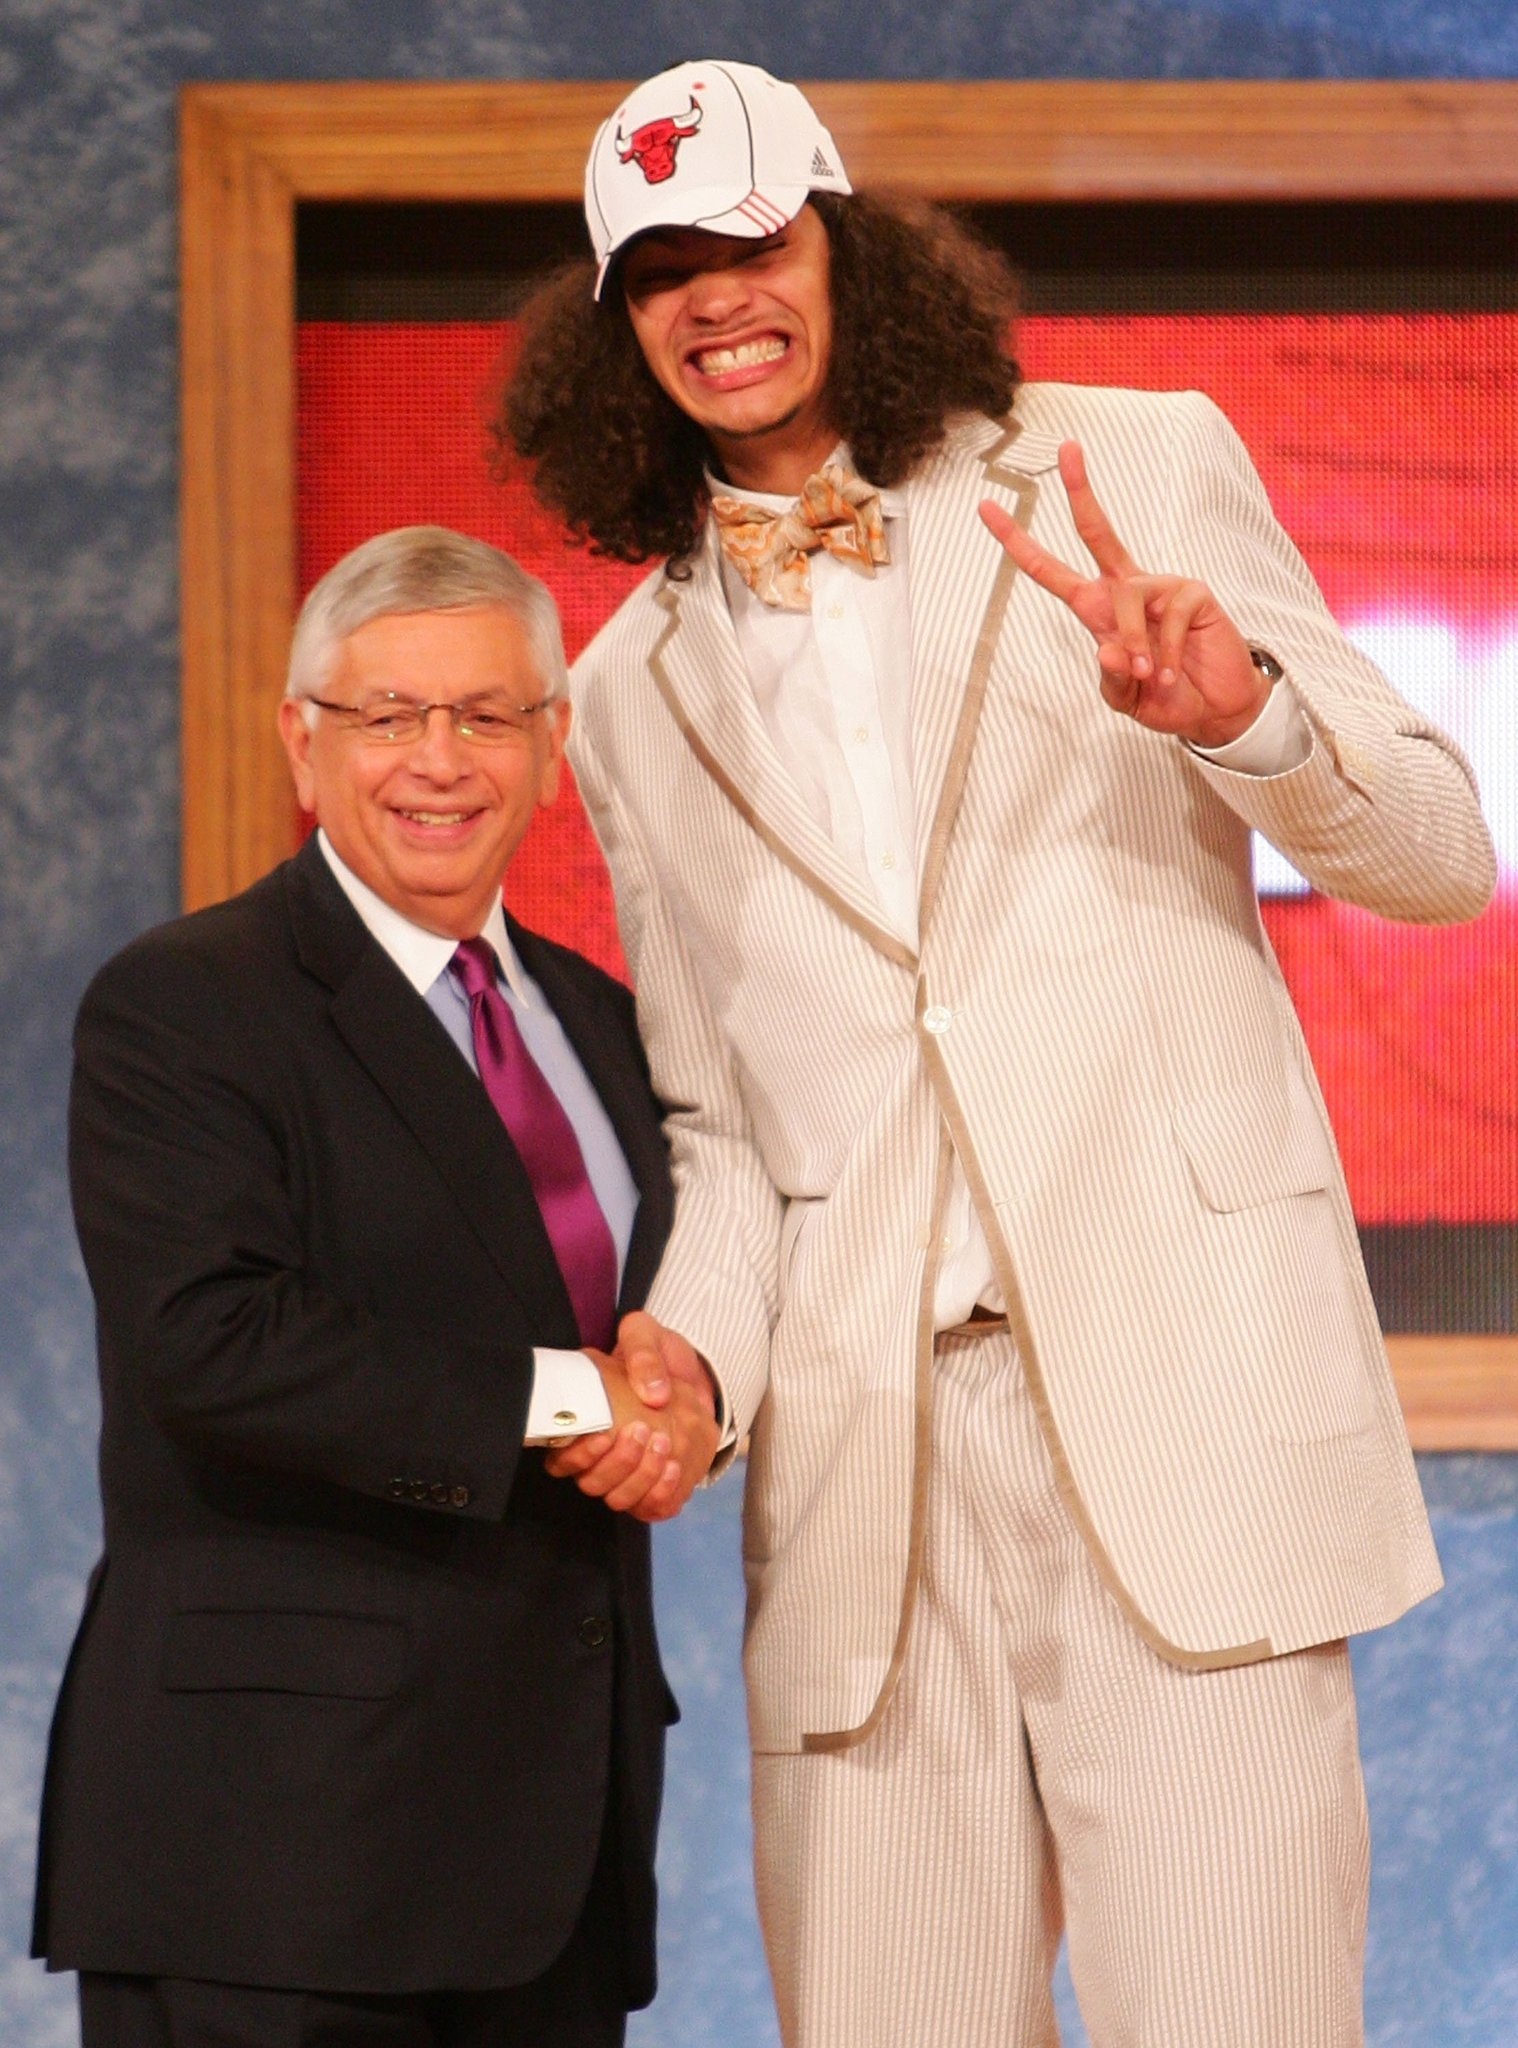 2007 NBA draft: Bulls couldn't pass on Joakim Noah, an energetic, proven winner - Chicago Tribune